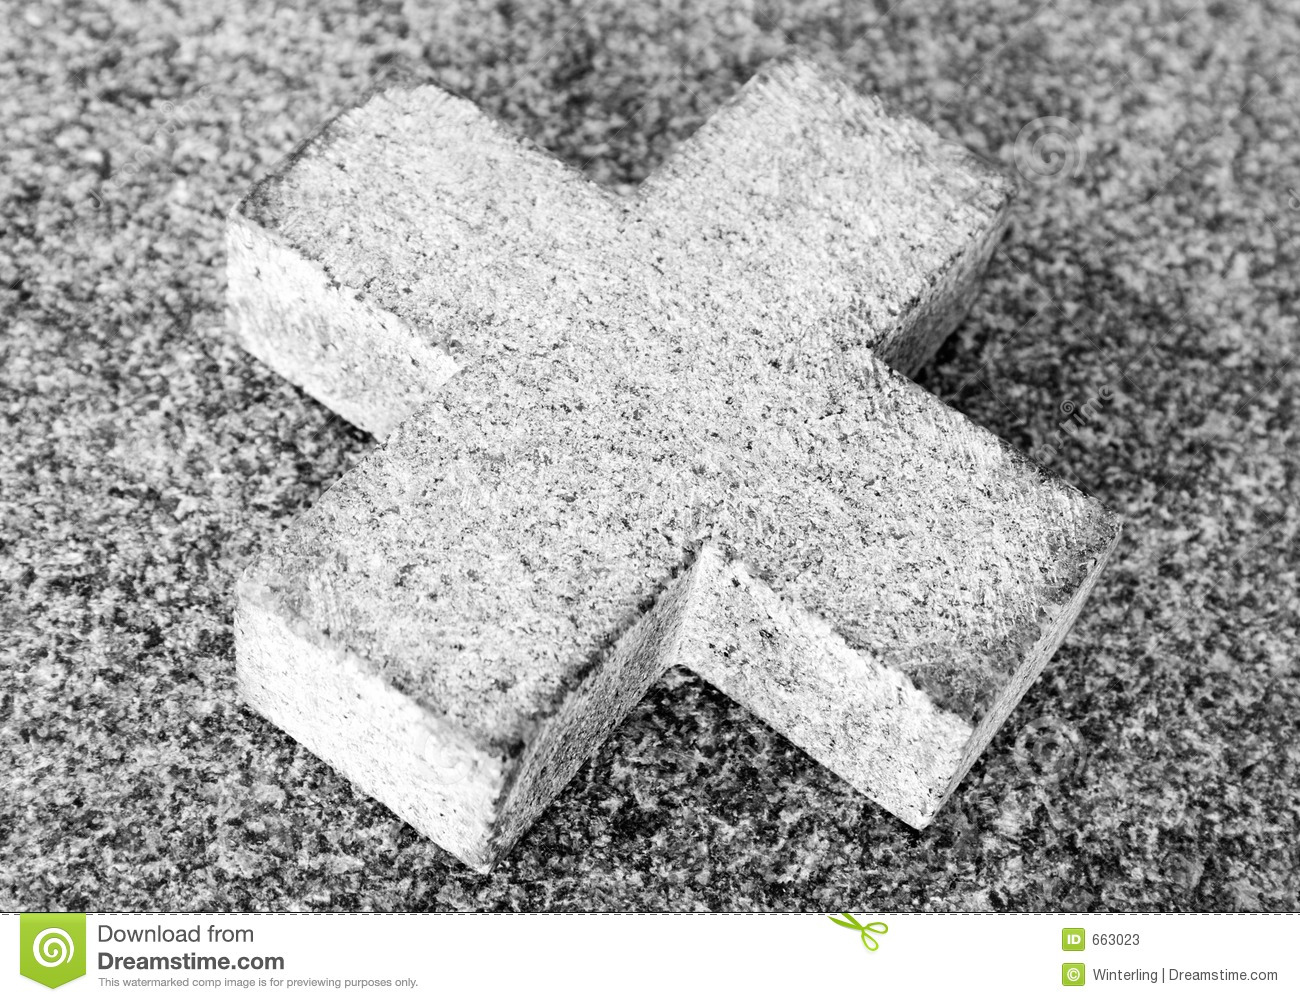 Simple Stone Cross (Black and White)